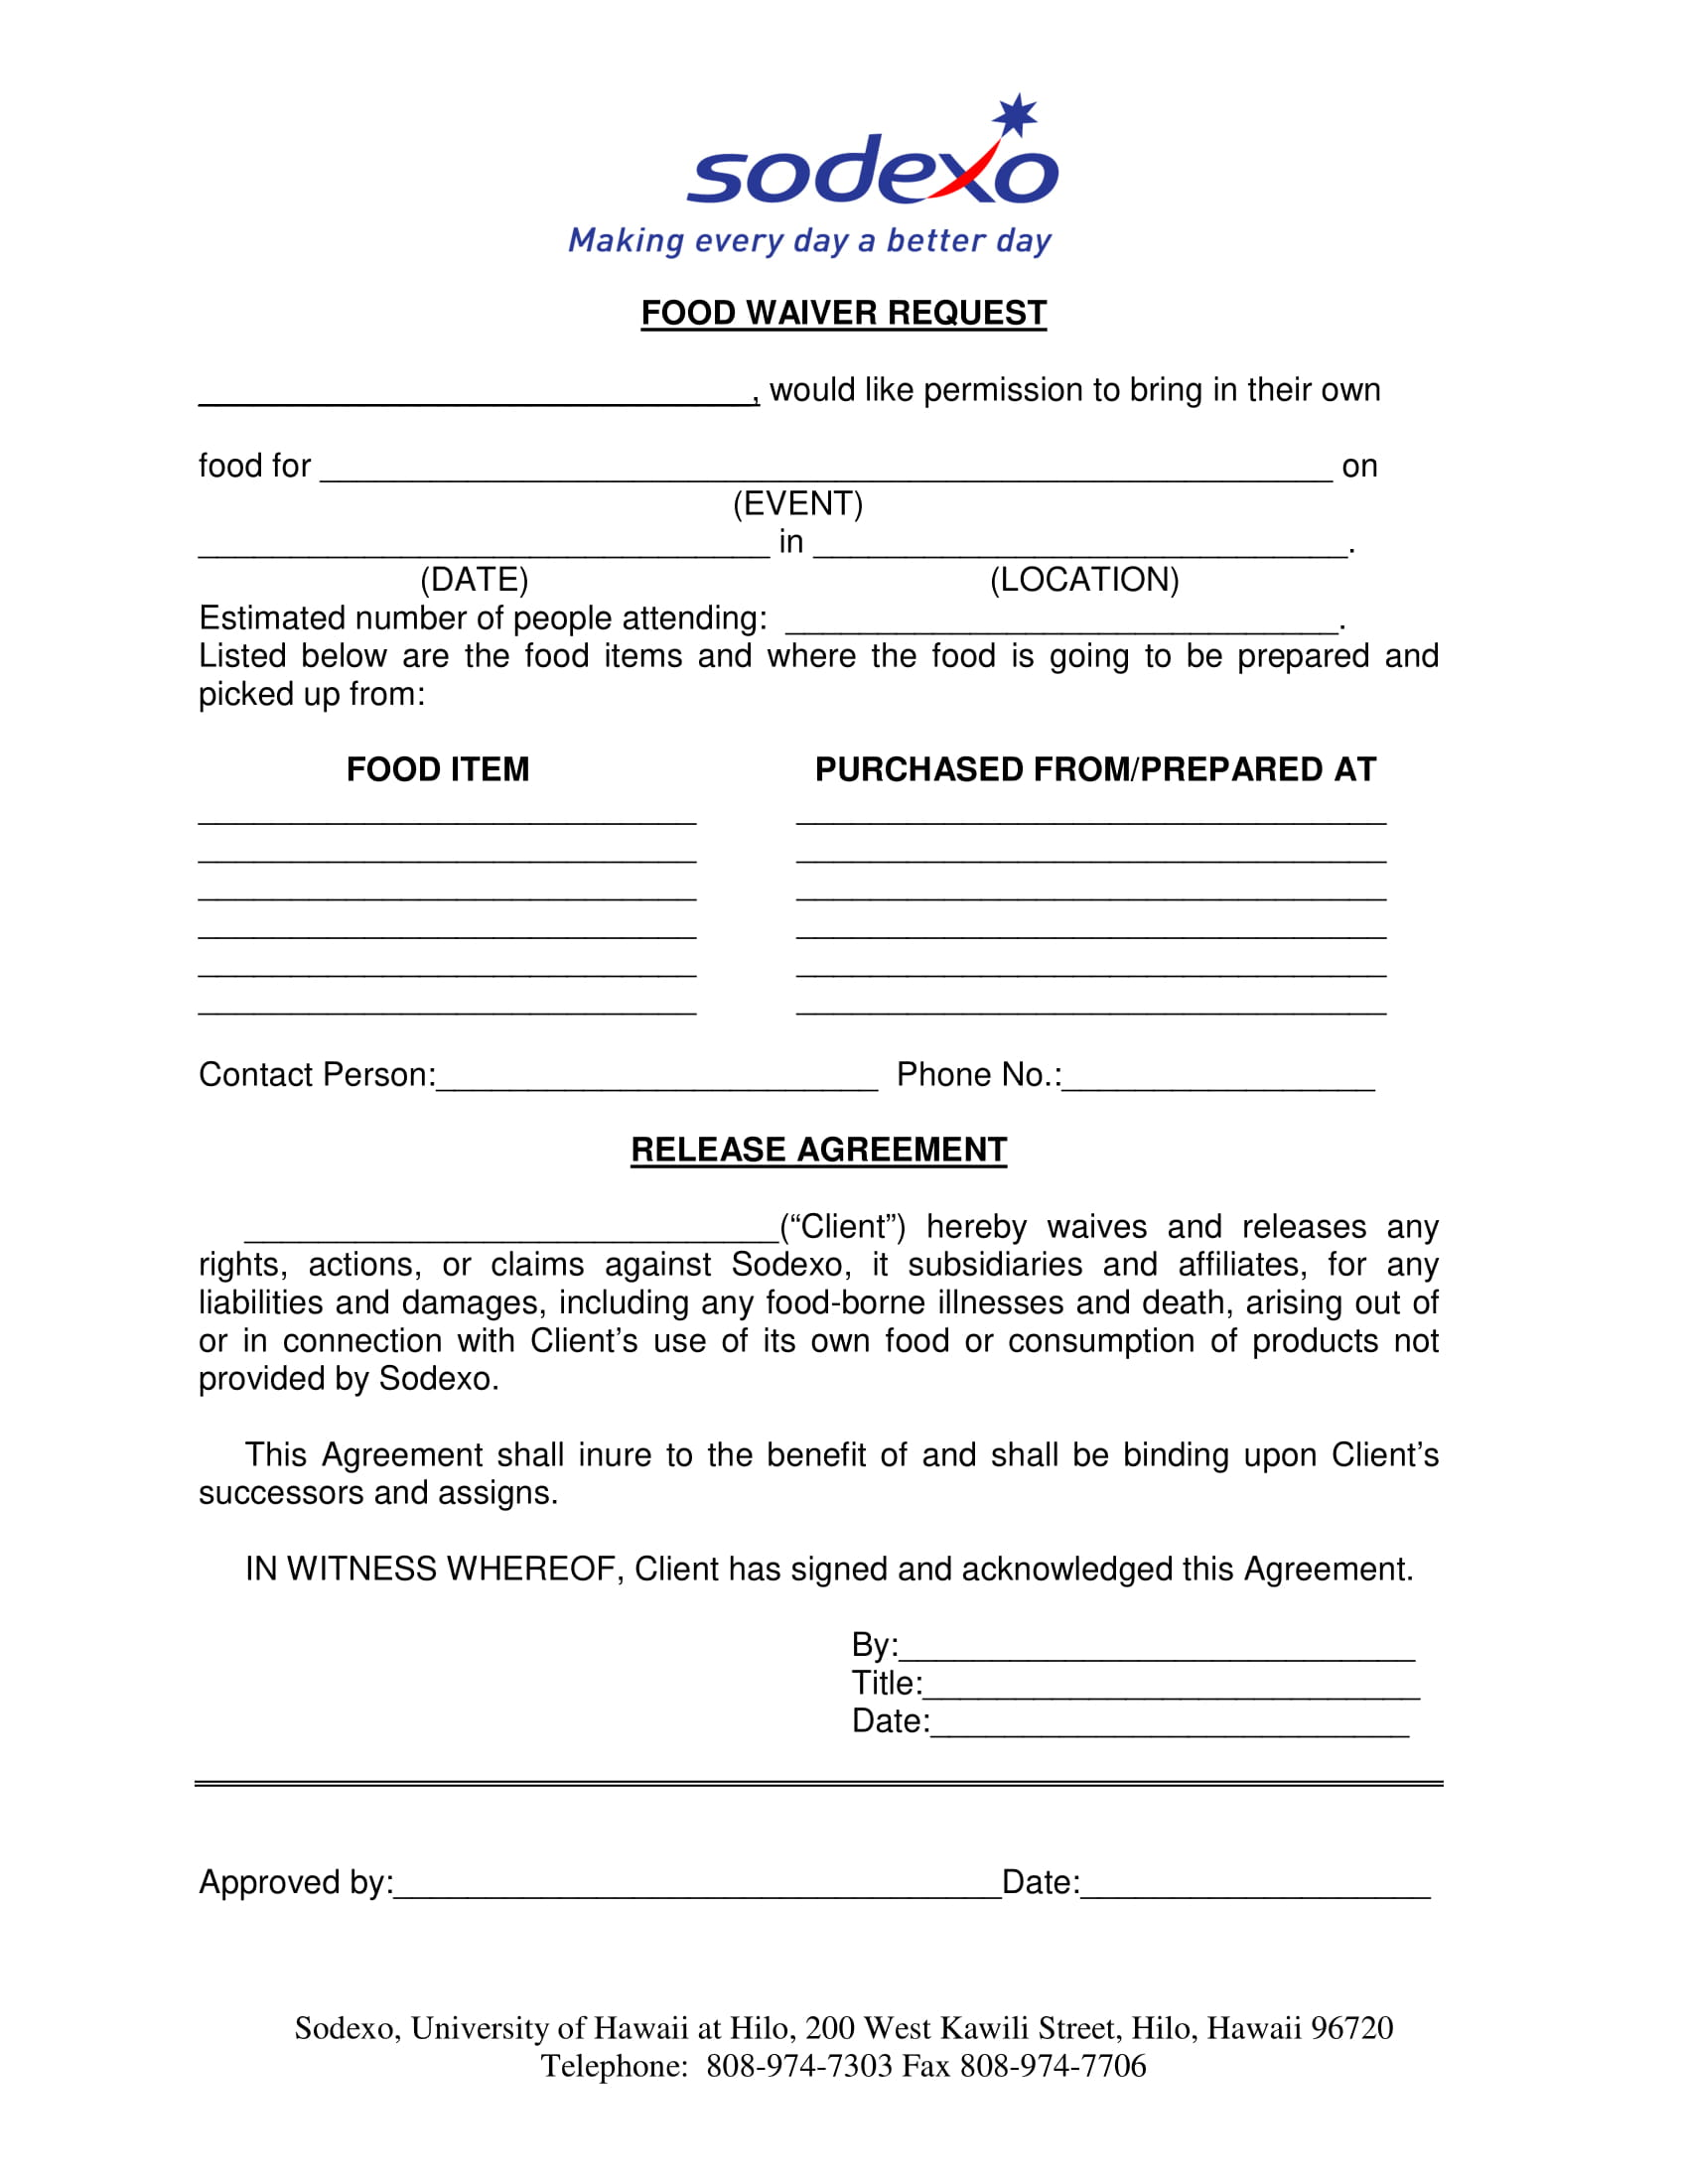 food waiver request form 1